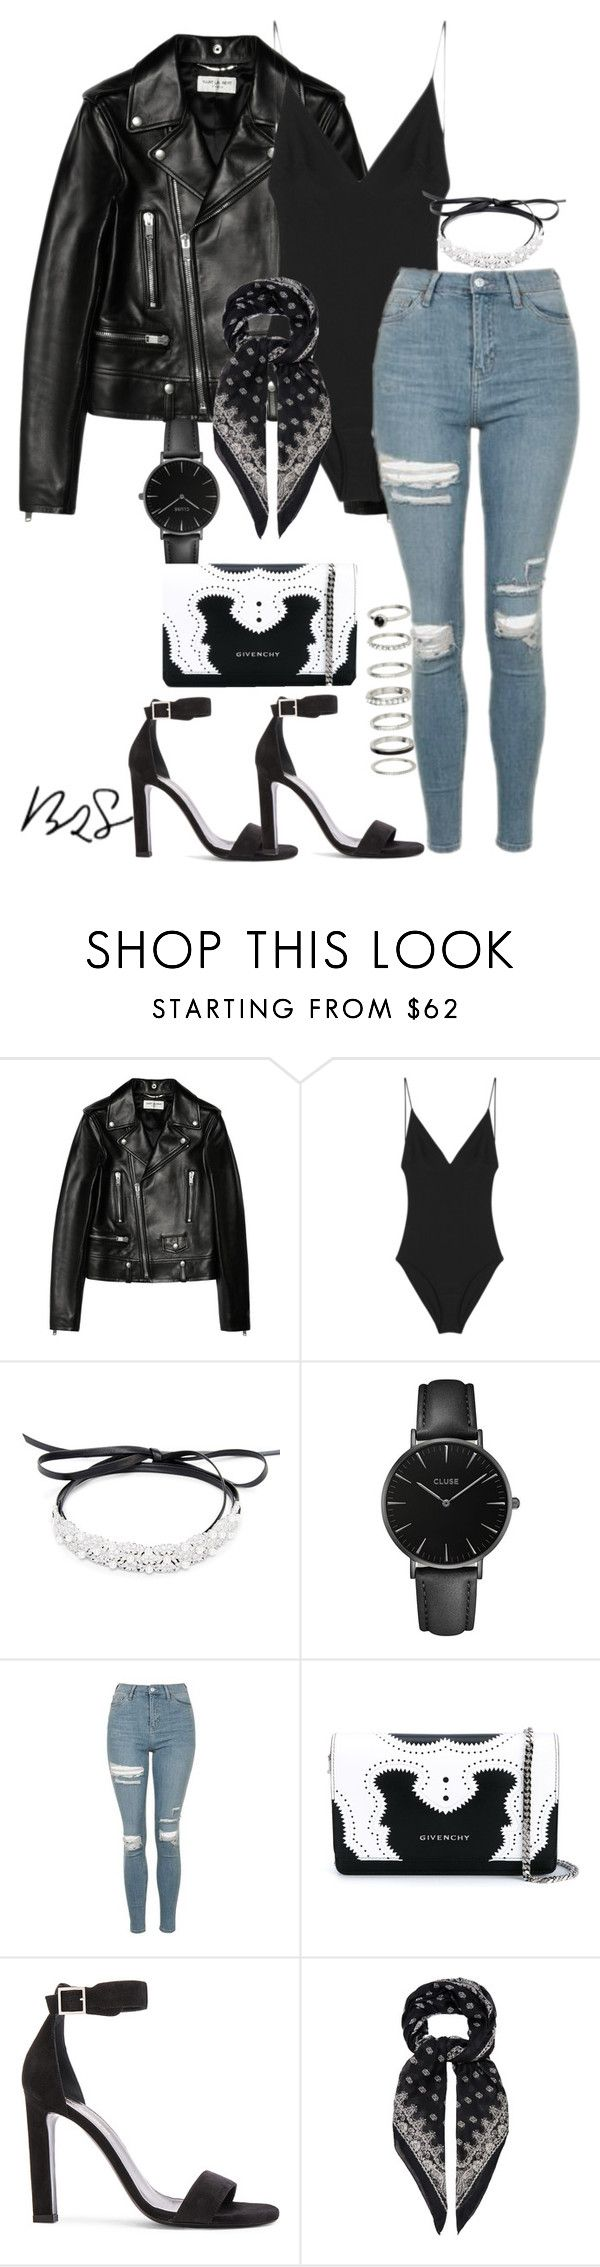 """#727"" by blendingtwostyles ❤ liked on Polyvore featuring Yves Saint Laurent, Dion Lee, Fallon, CLUSE, Topshop and Givenchy"